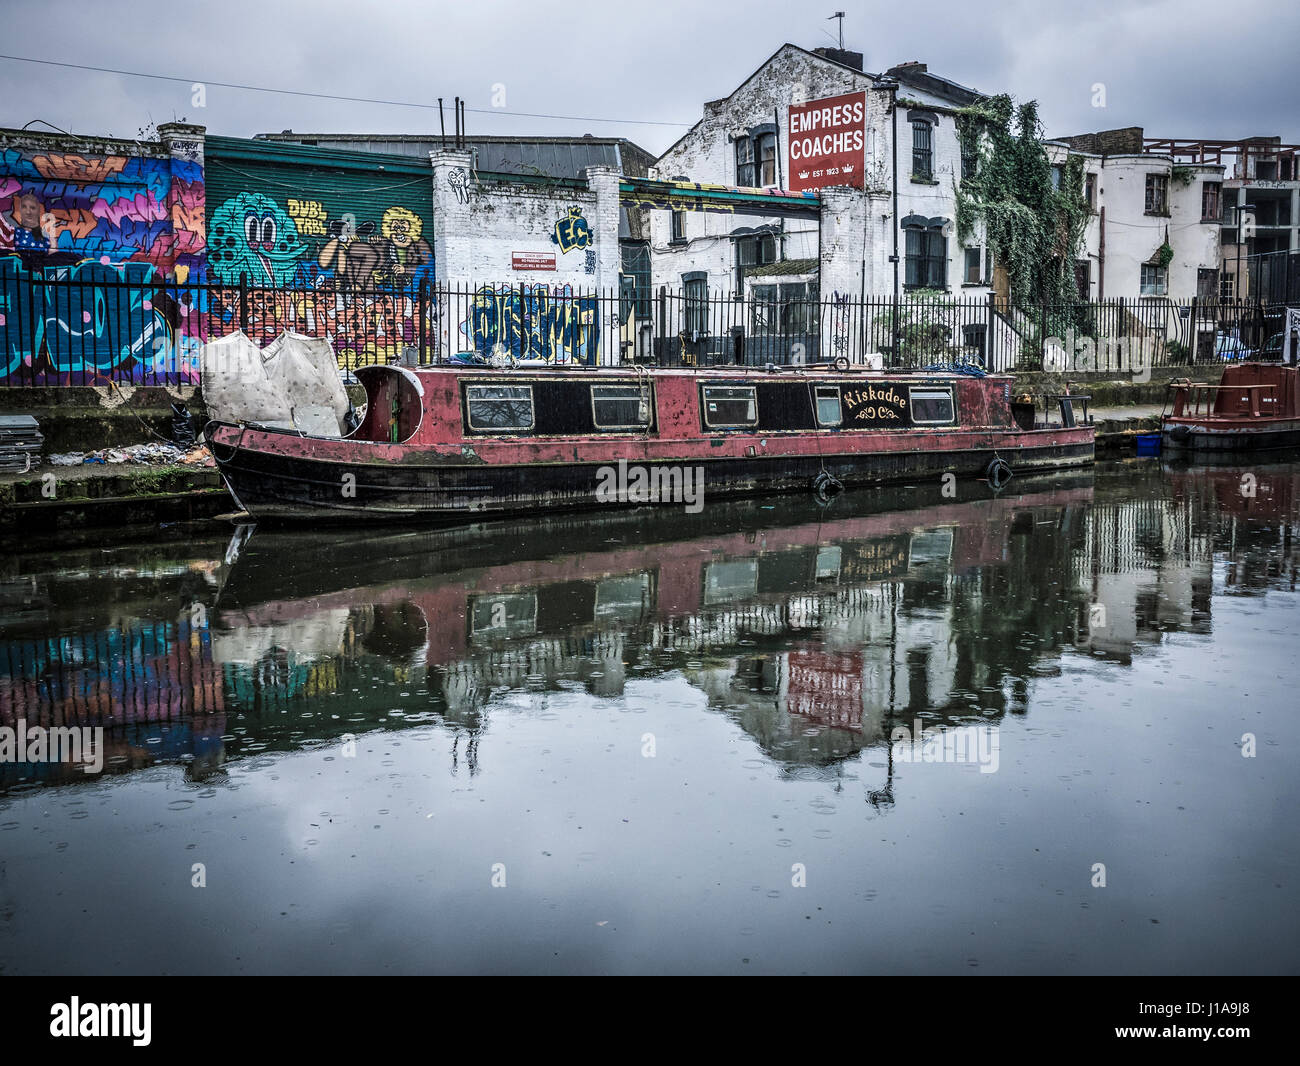 Canal Boat on Regent's Canal Towpath - Stock Image